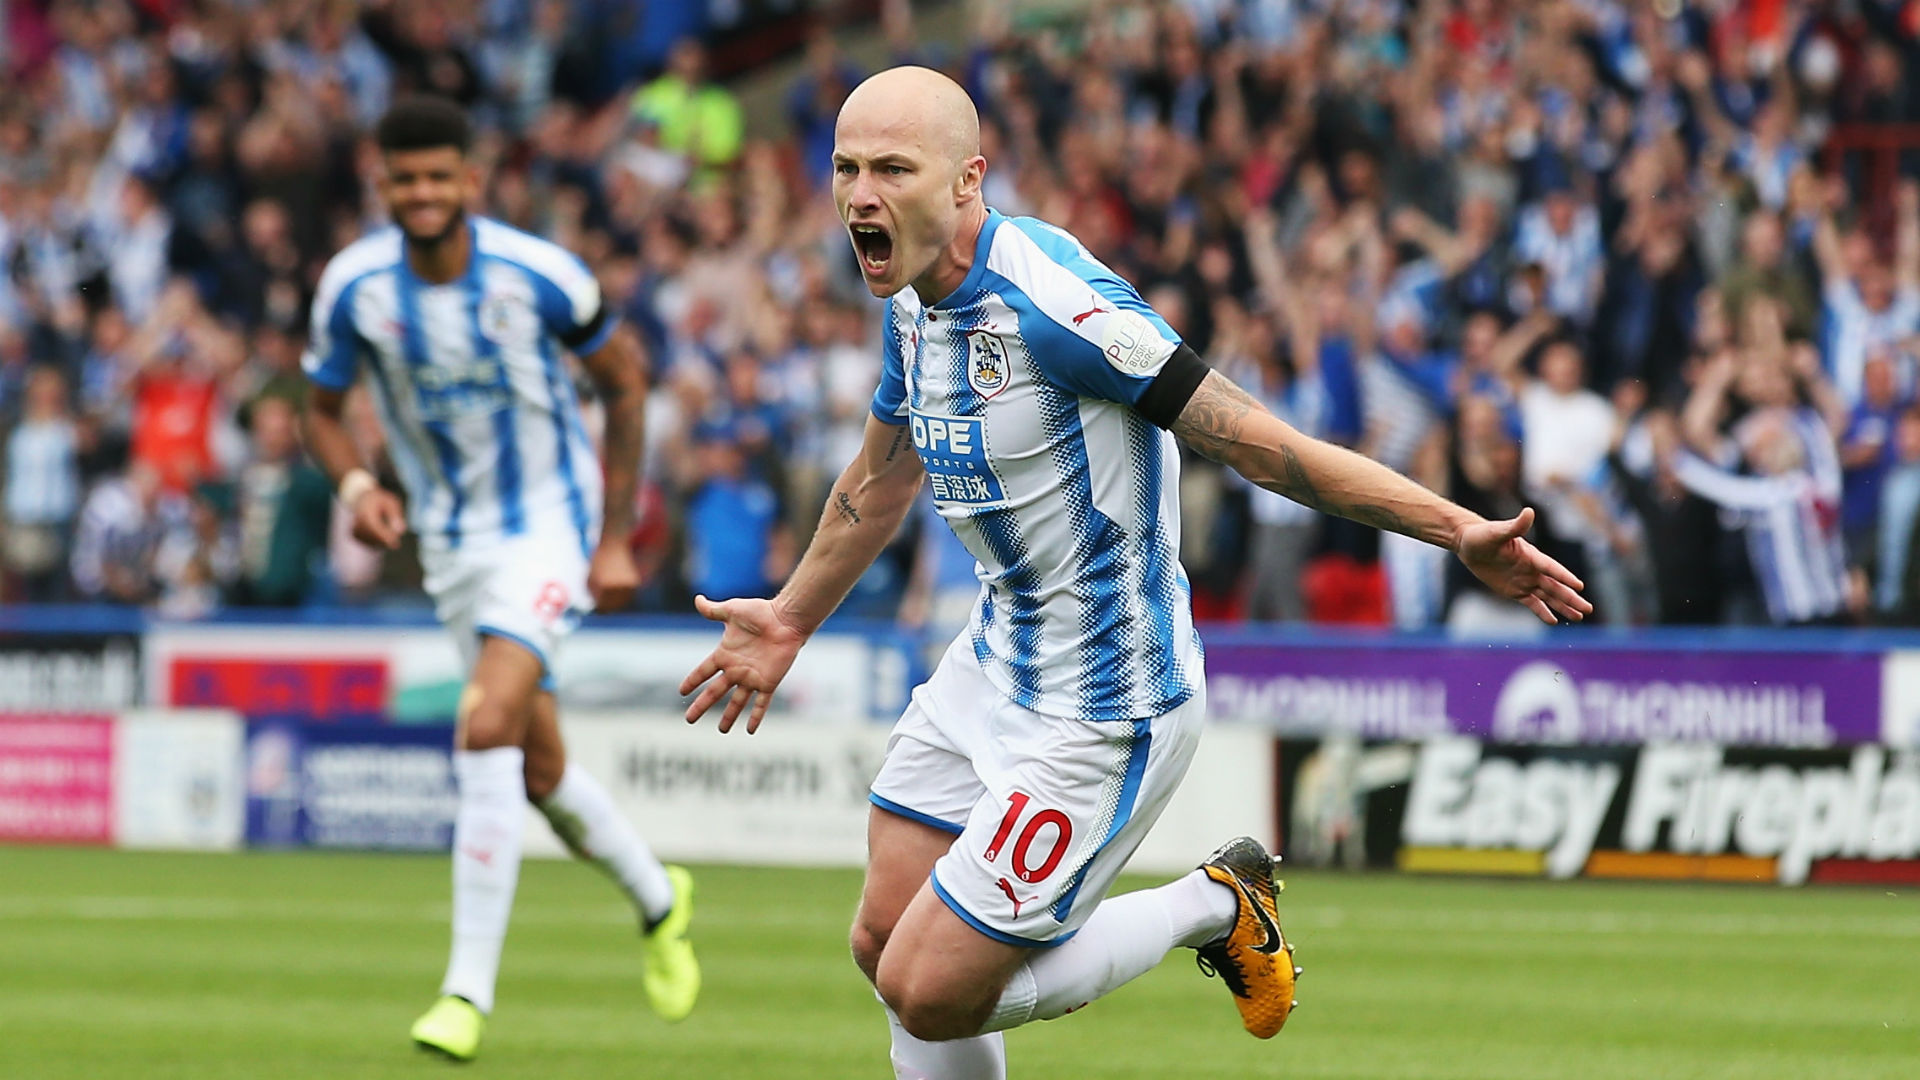 Huddersfield vs Newcastle United, Premier League live score updates and team news